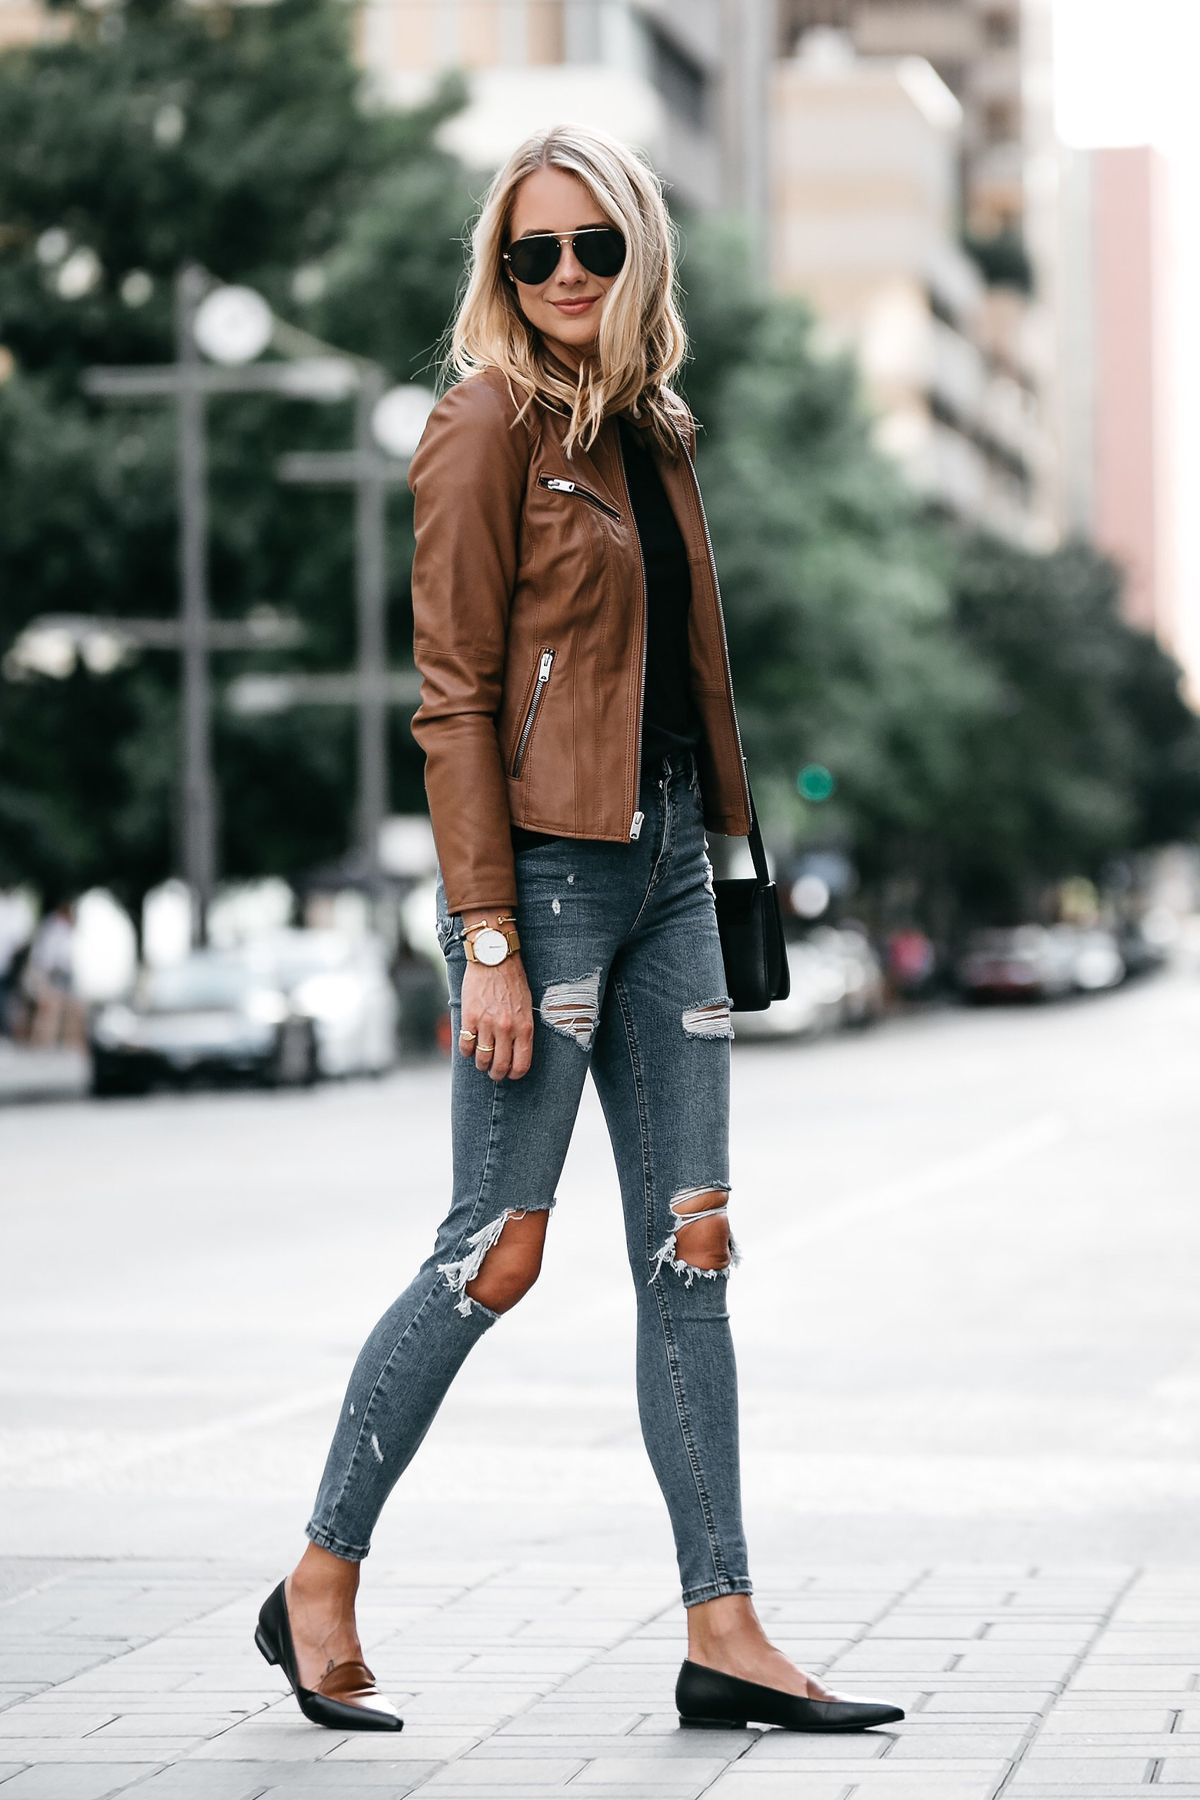 8d47569022 Blonde Woman Wearing Tan Leather Jacket Black Tshirt Denim Ripped Skinny  Jeans Outfit Black Tan Loafers Chloe Faye Handbag Fashion Jackson Dallas  Blogger ...